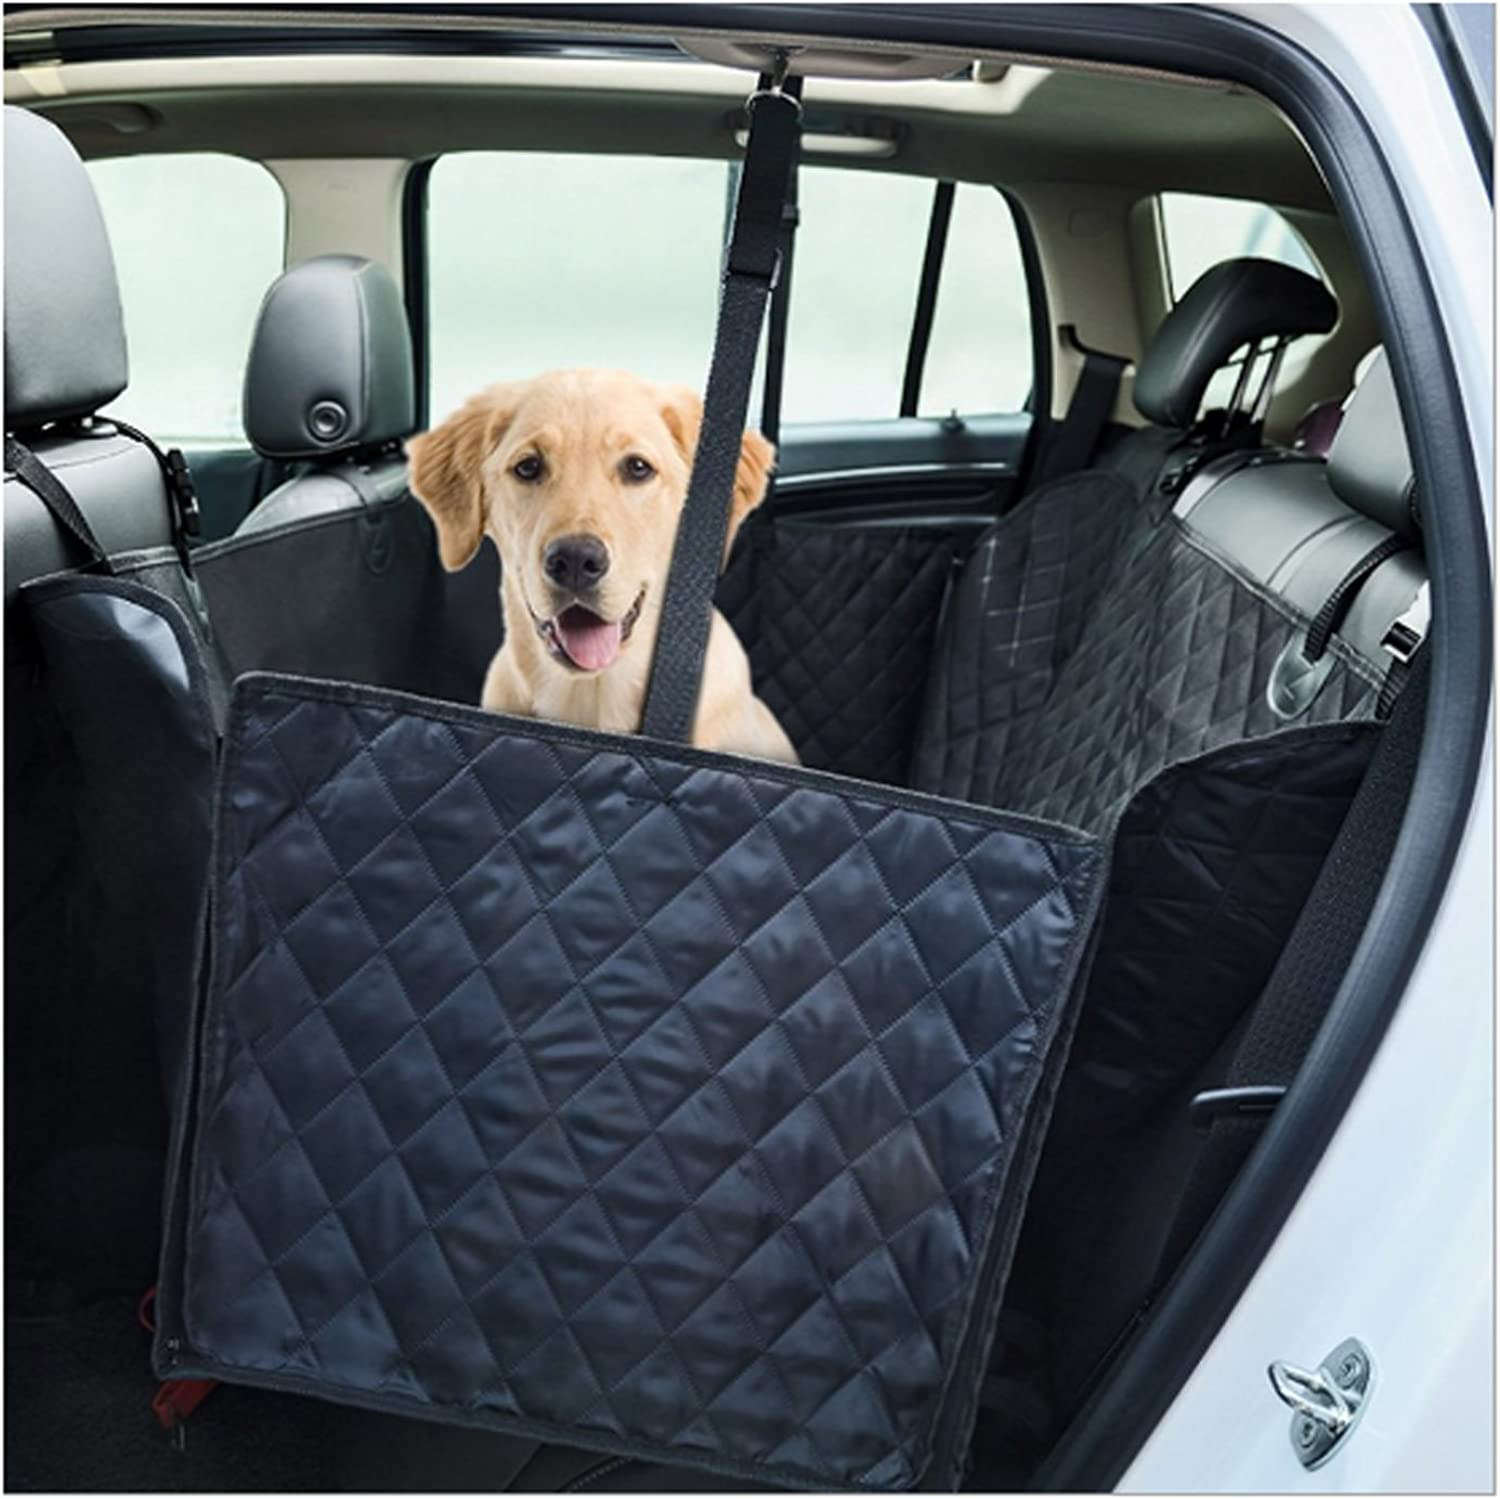 Black Manba Nonslip Durable Dog Seat Covers Travel Waterproof Back Seat Cover With Car Safety Seat Belt,Dog Car Seat Cover With Extra Side Flaps Scratchproof Abrasion Resistance And Hammock Congreeni